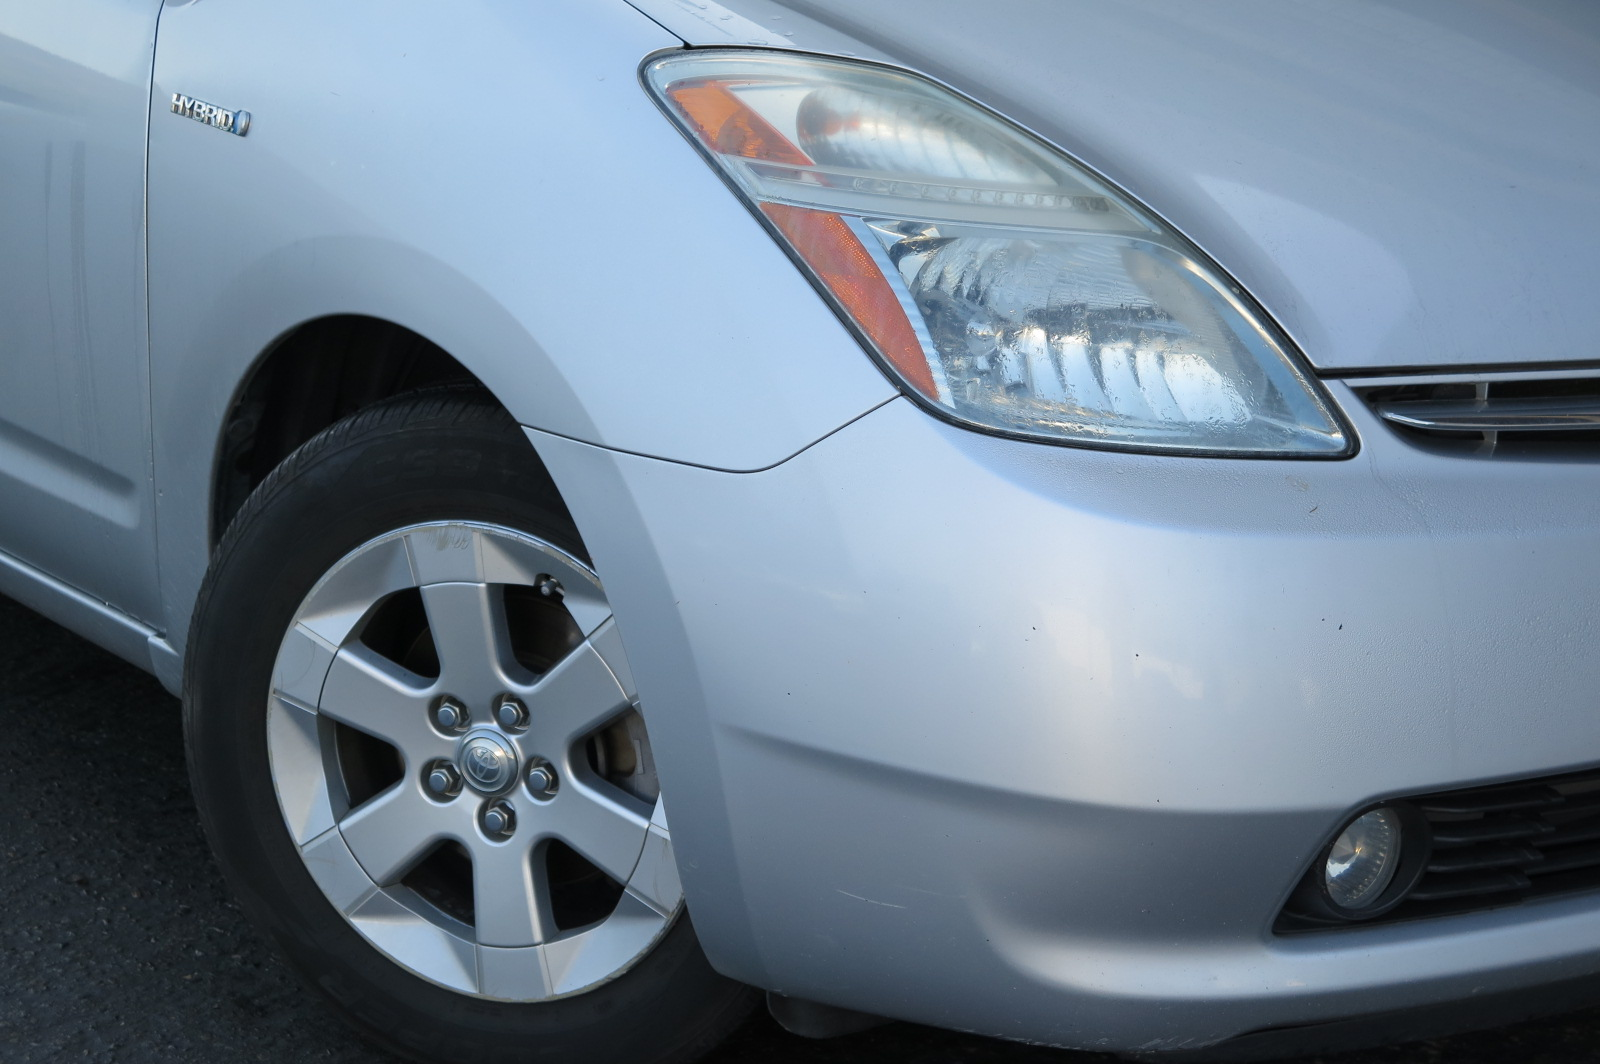 2006 TOYOTA PRIUS HATCHBACK silver 4-cyl hybrid 15 liter automatic check out our 2006 prius